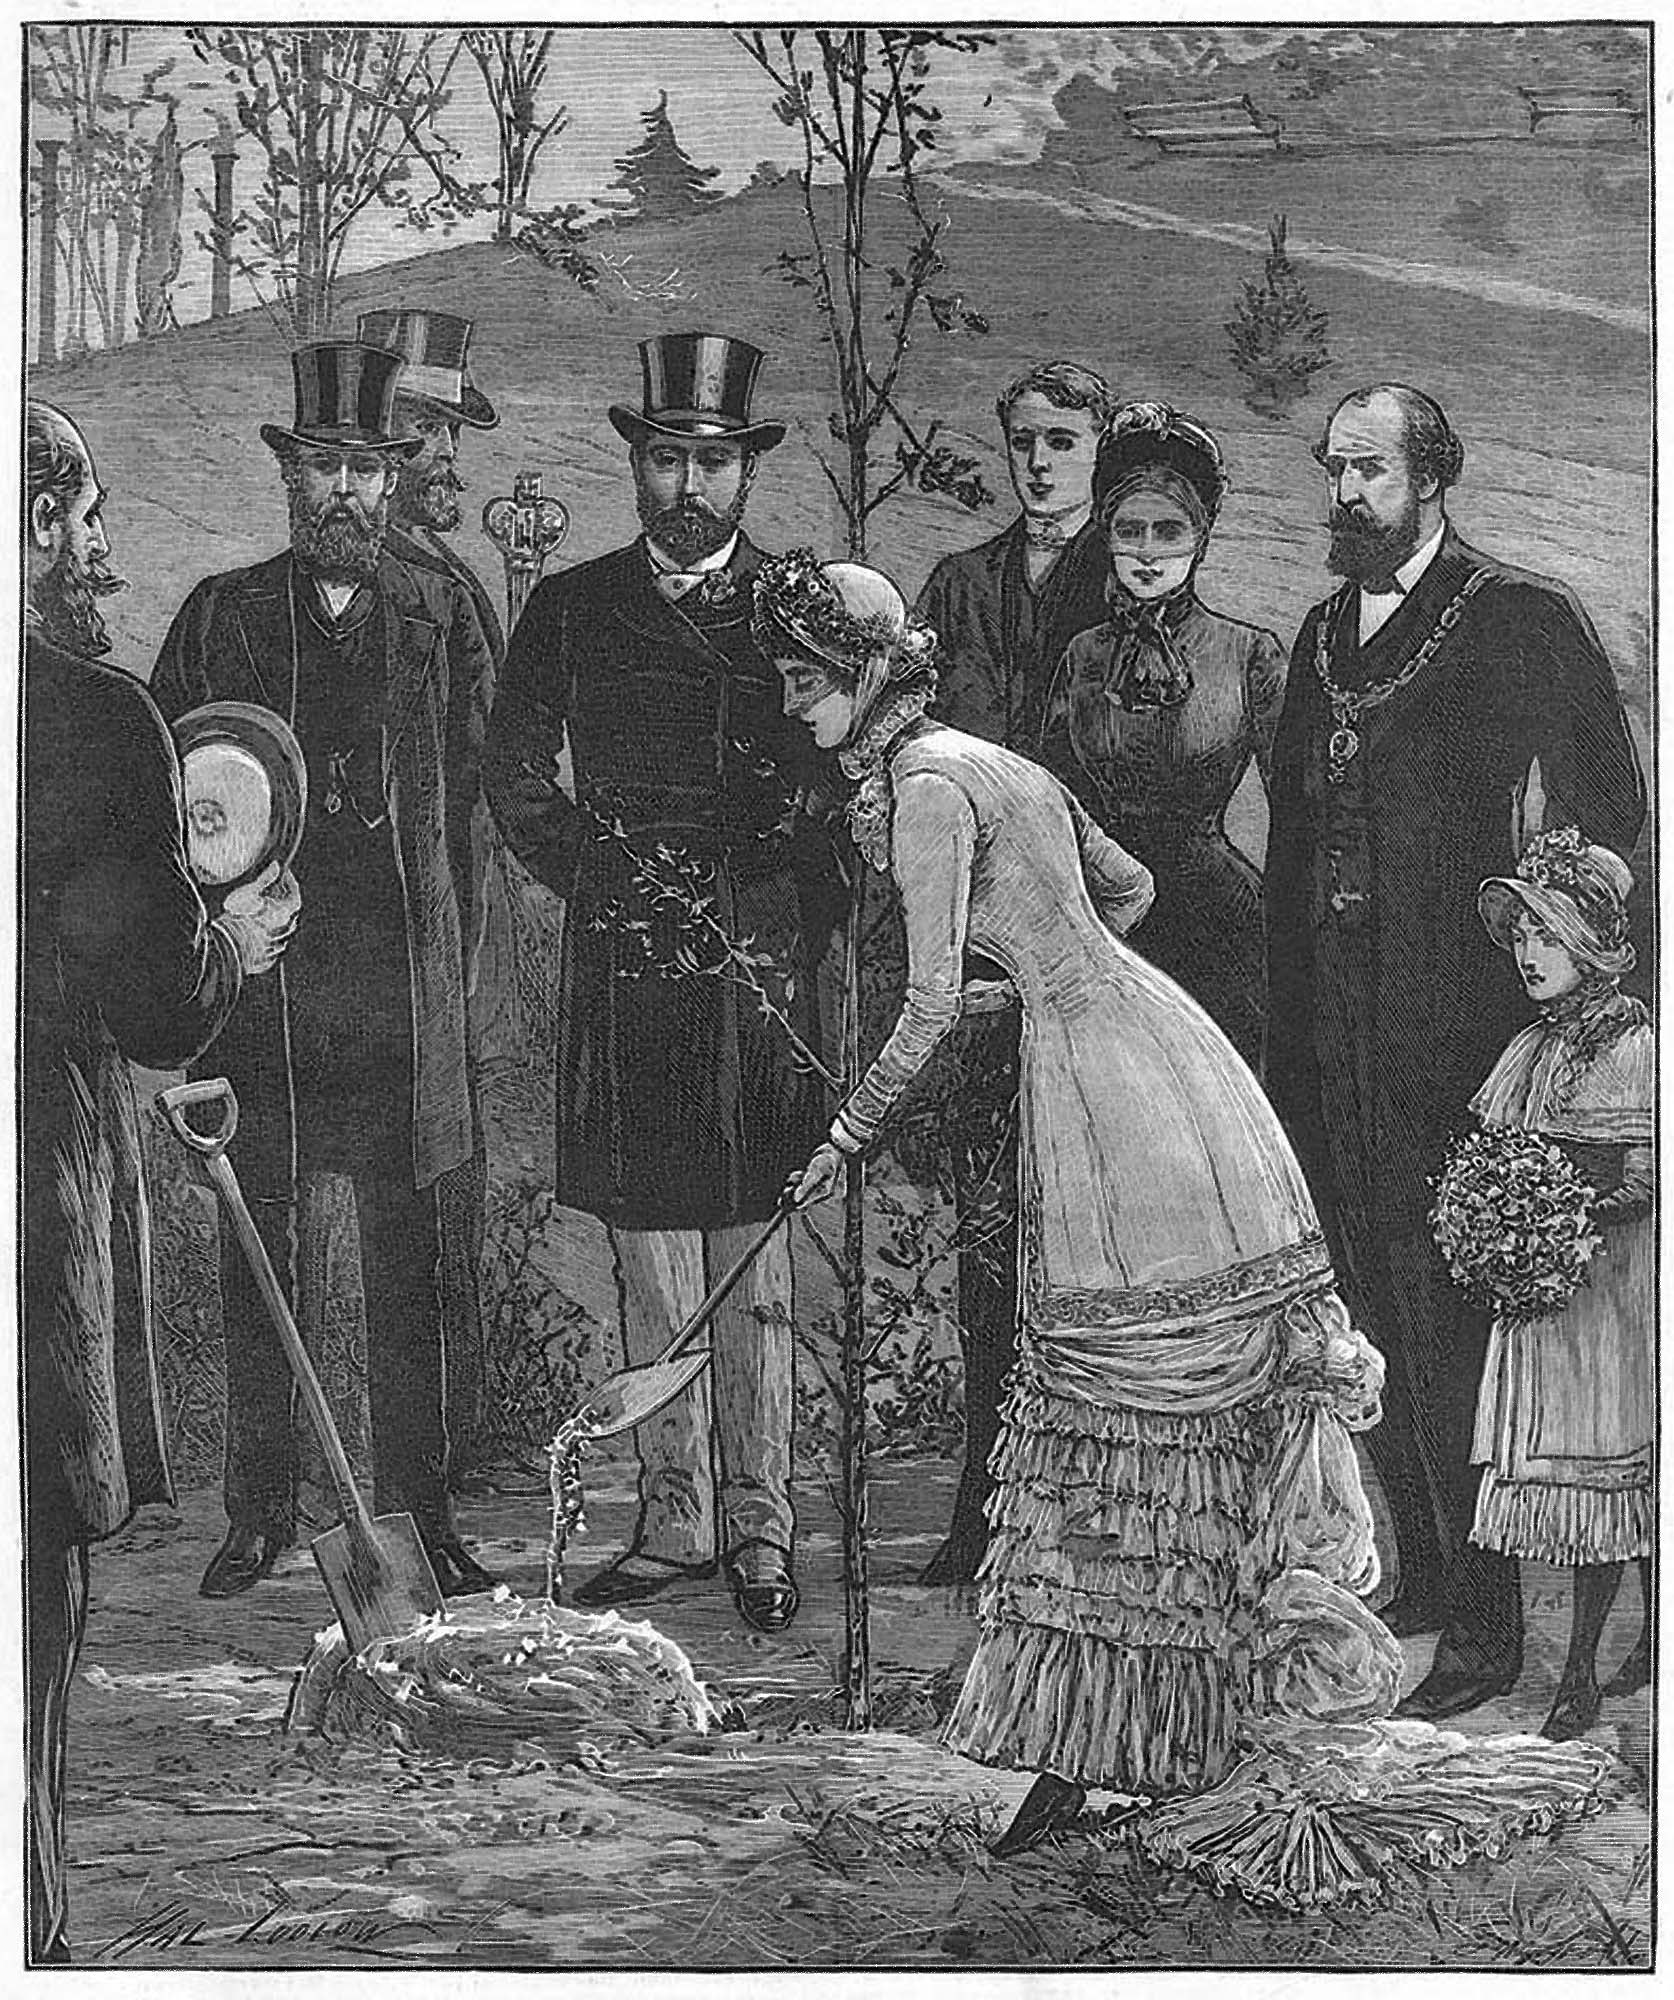 An engraving depicting the planting an oak tree in Abbey Park during the royal visit to Leicester, 1881 -